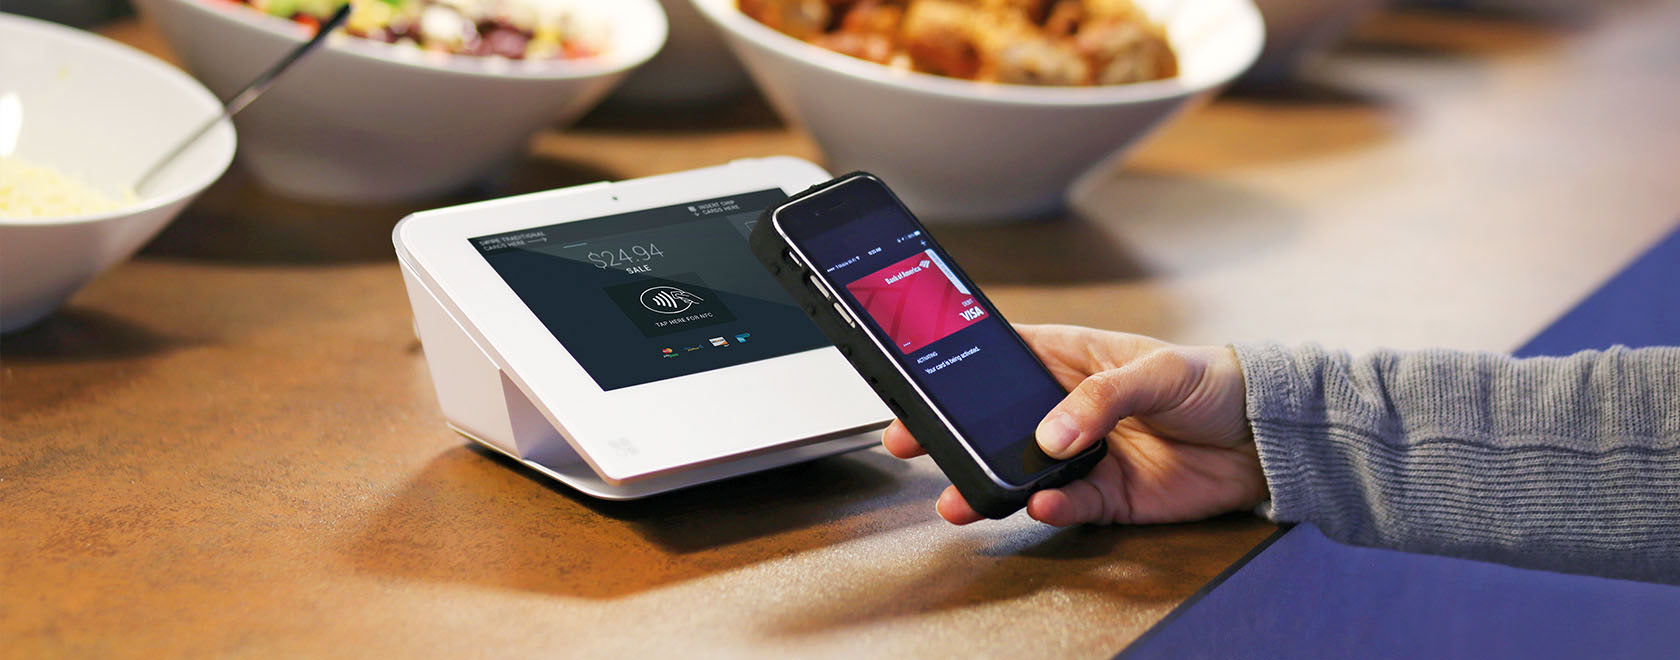 nano tracer Enables Testing of Mobile Payments at the POS